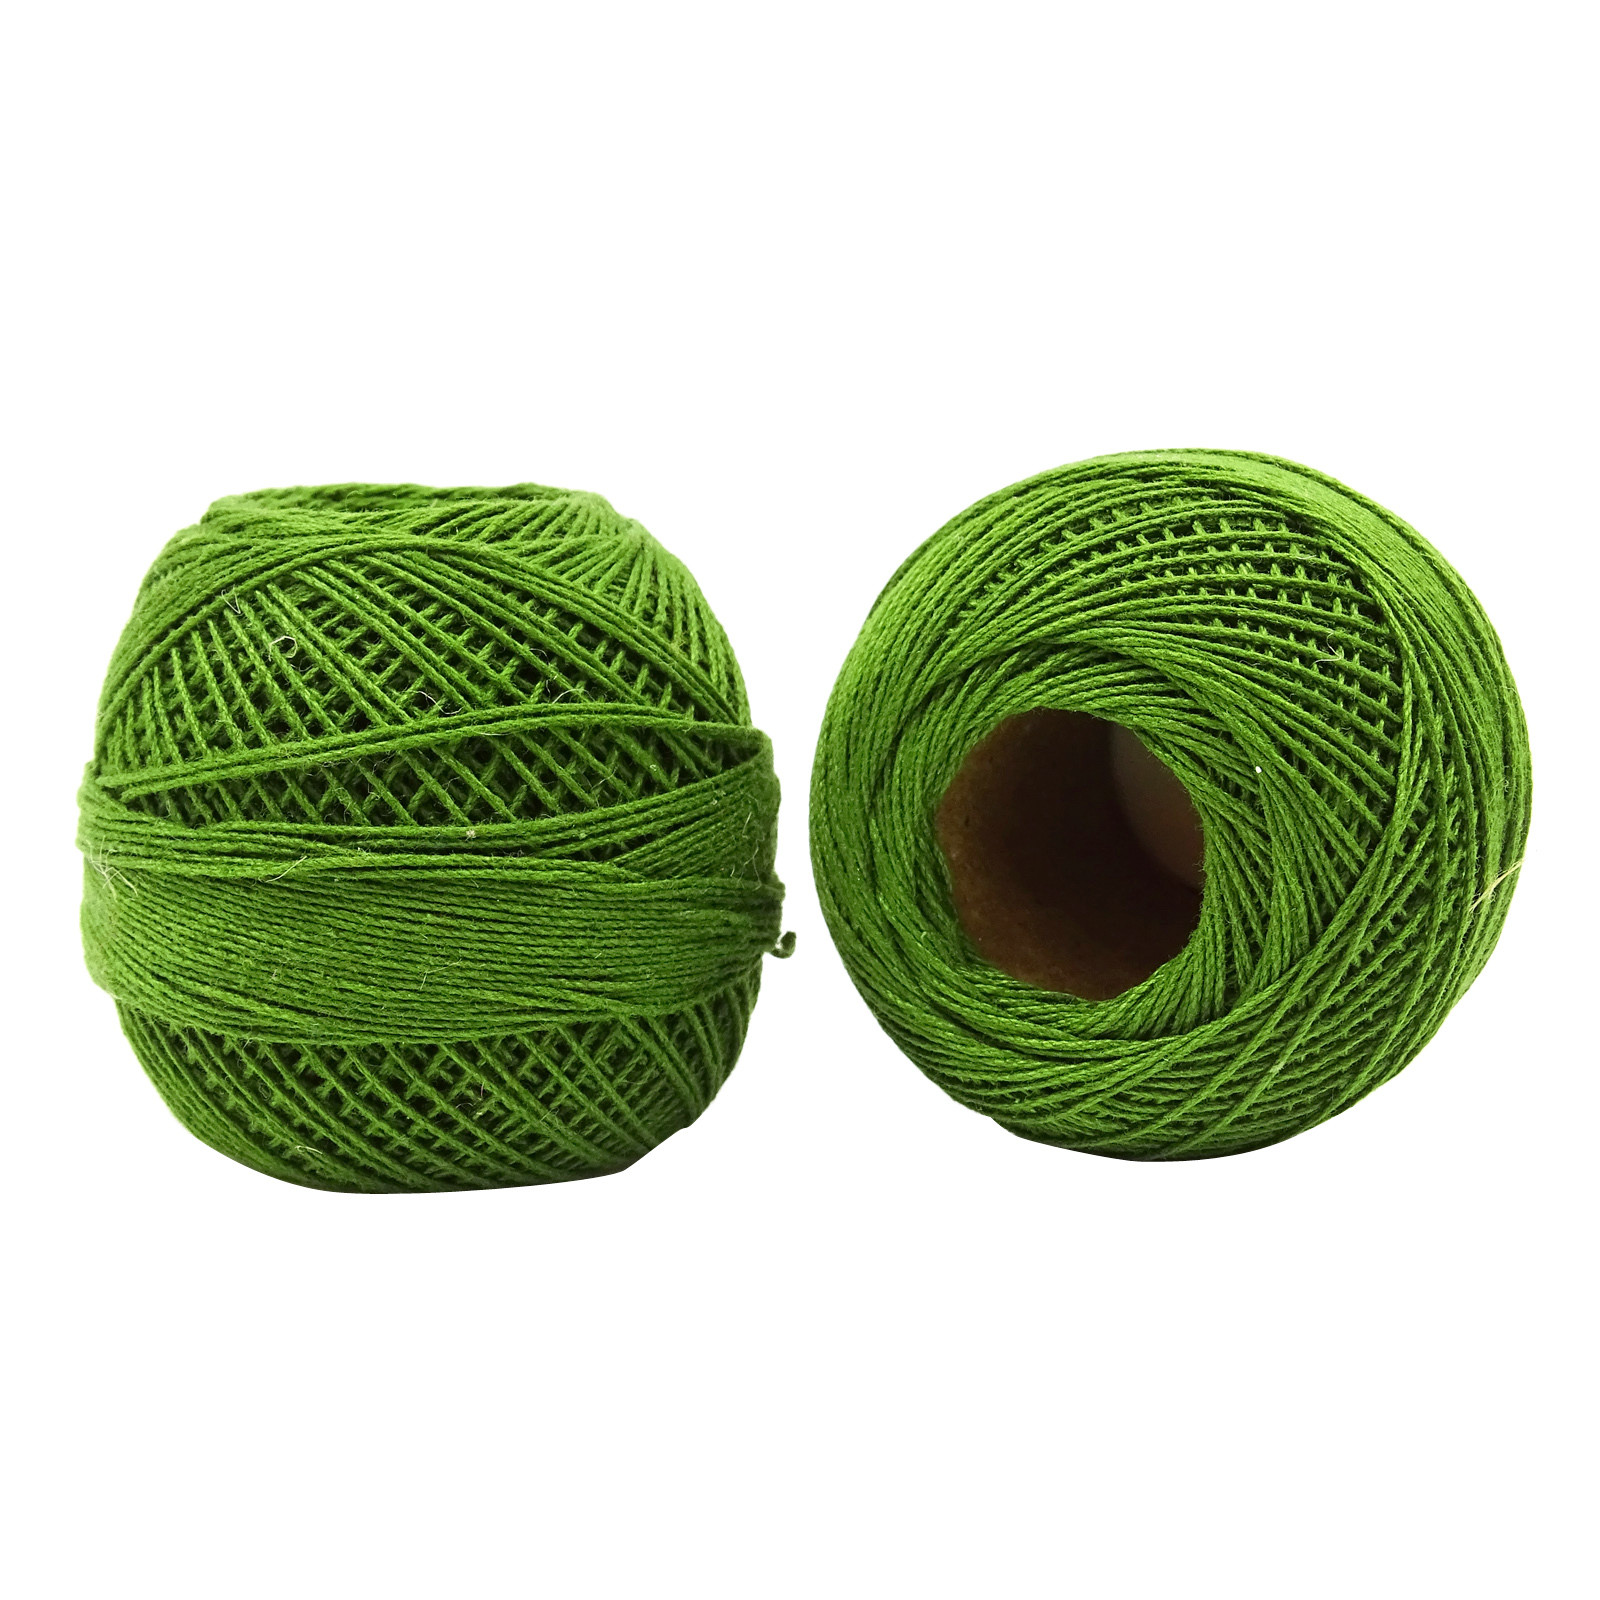 Awesome Anchor Crochet Cotton Knitting Tatting Ball Embroidery Cotton Crochet Threads Of New Lizbeth Cotton Crochet Tatting Thread Size 3 Color Cotton Crochet Threads